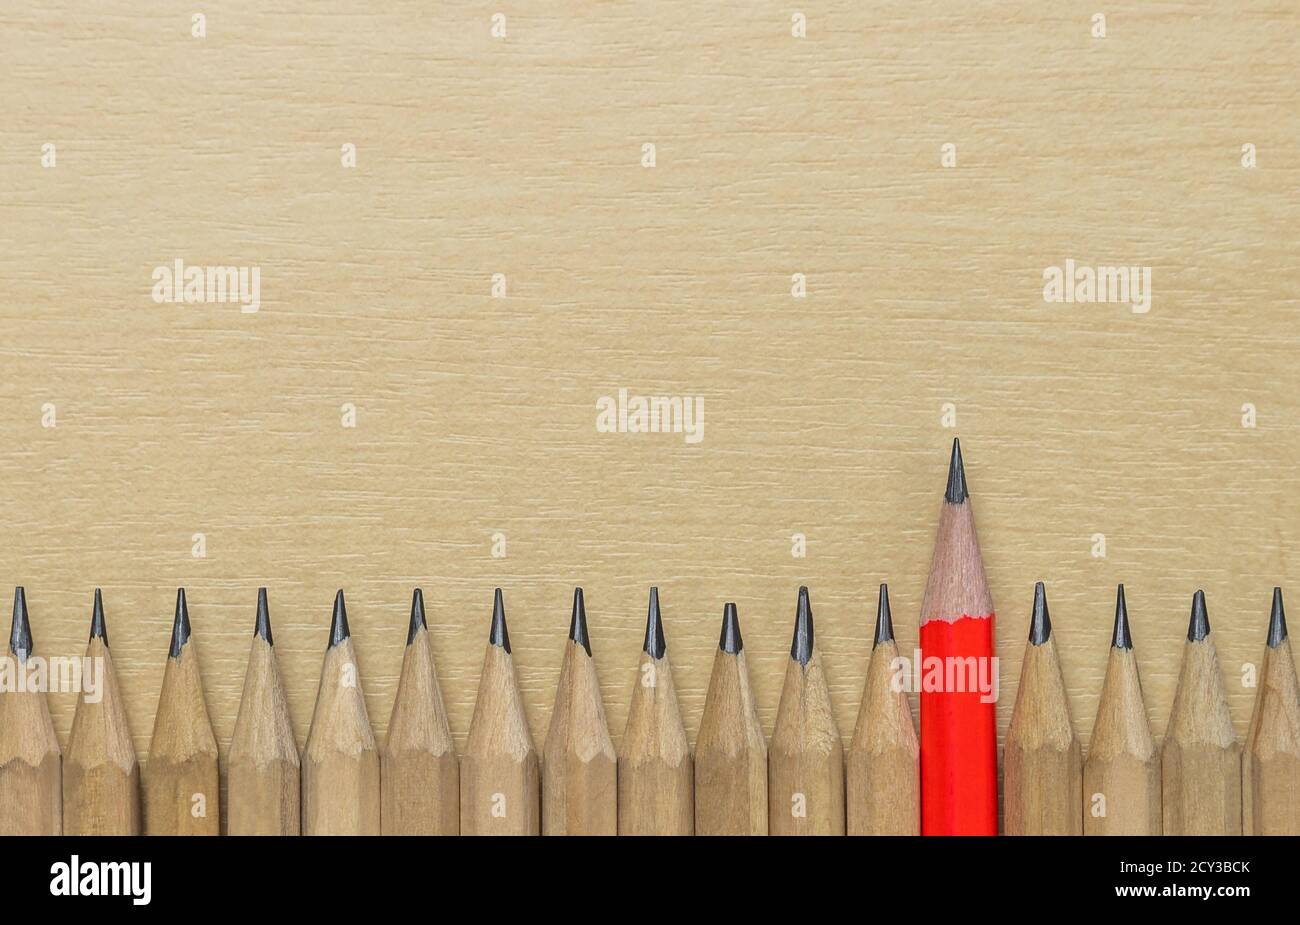 Different pencil standout from the others showing concept of unique business thinking different from the crowd and special one with leadership skill. Stock Photo